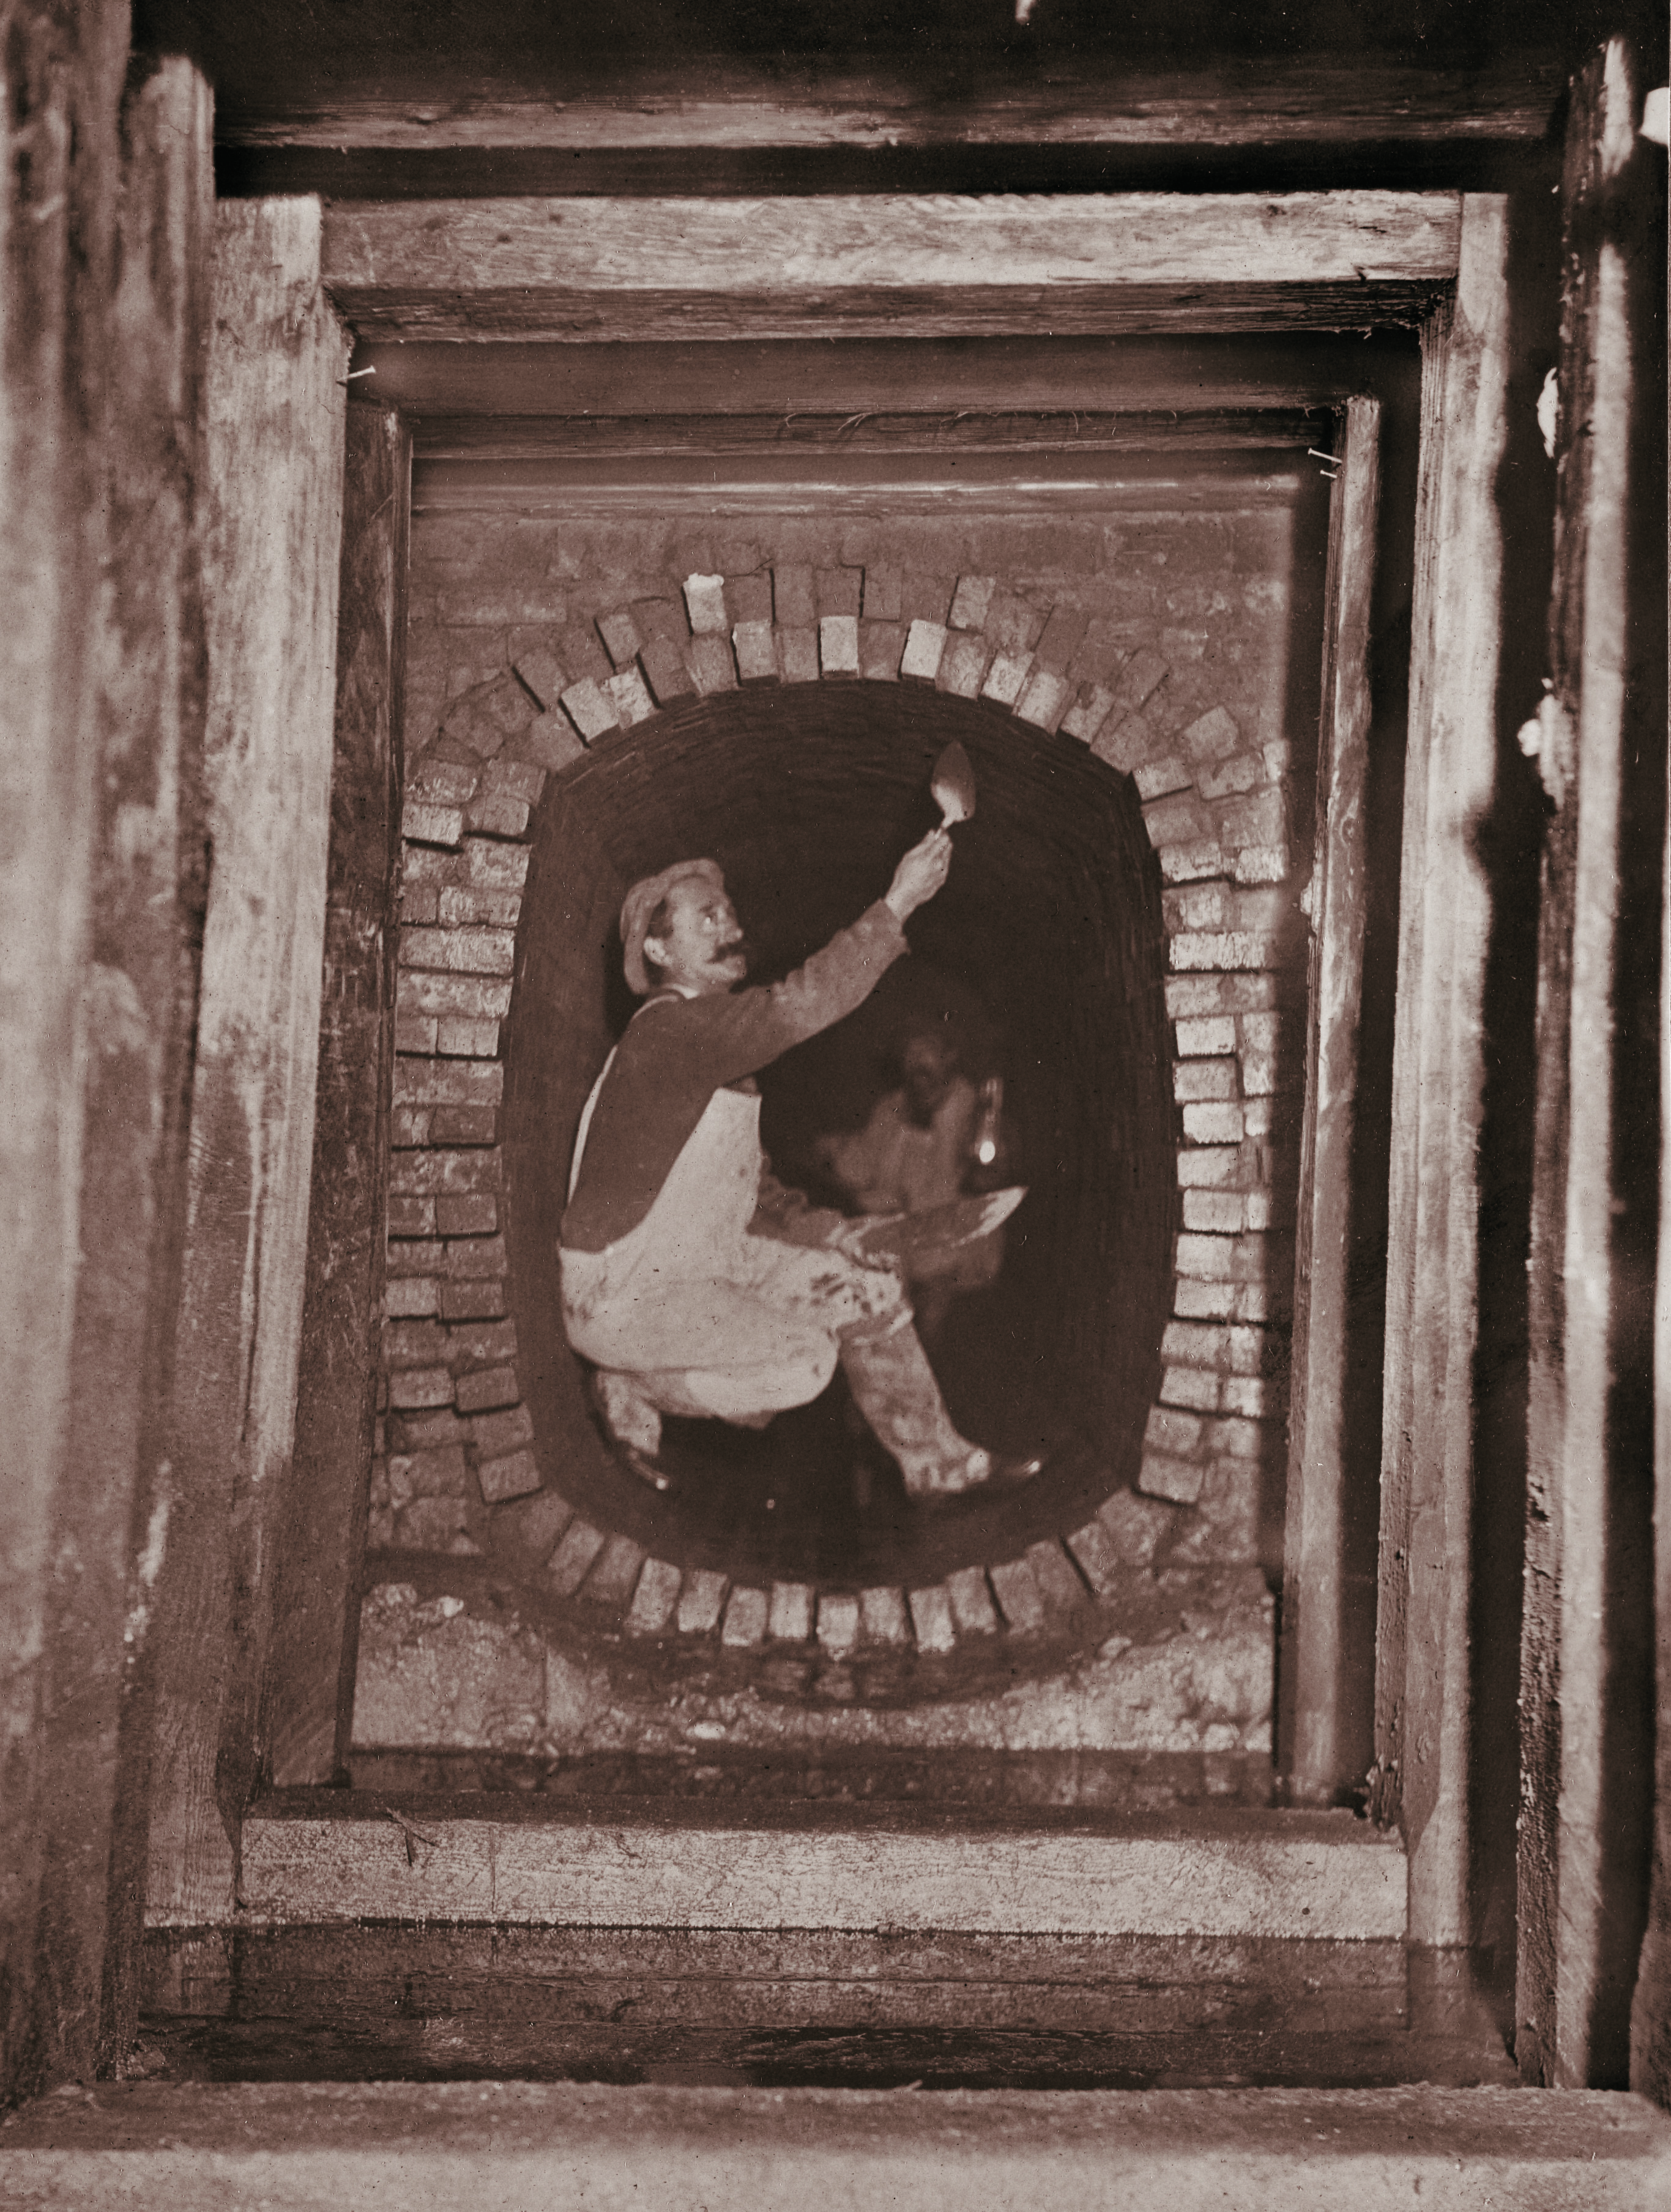 A man is pictured mortaring a sewer wall in 1880s Boston. Mortaring the inside of the sewer is designed to make the sewer impermeable to water